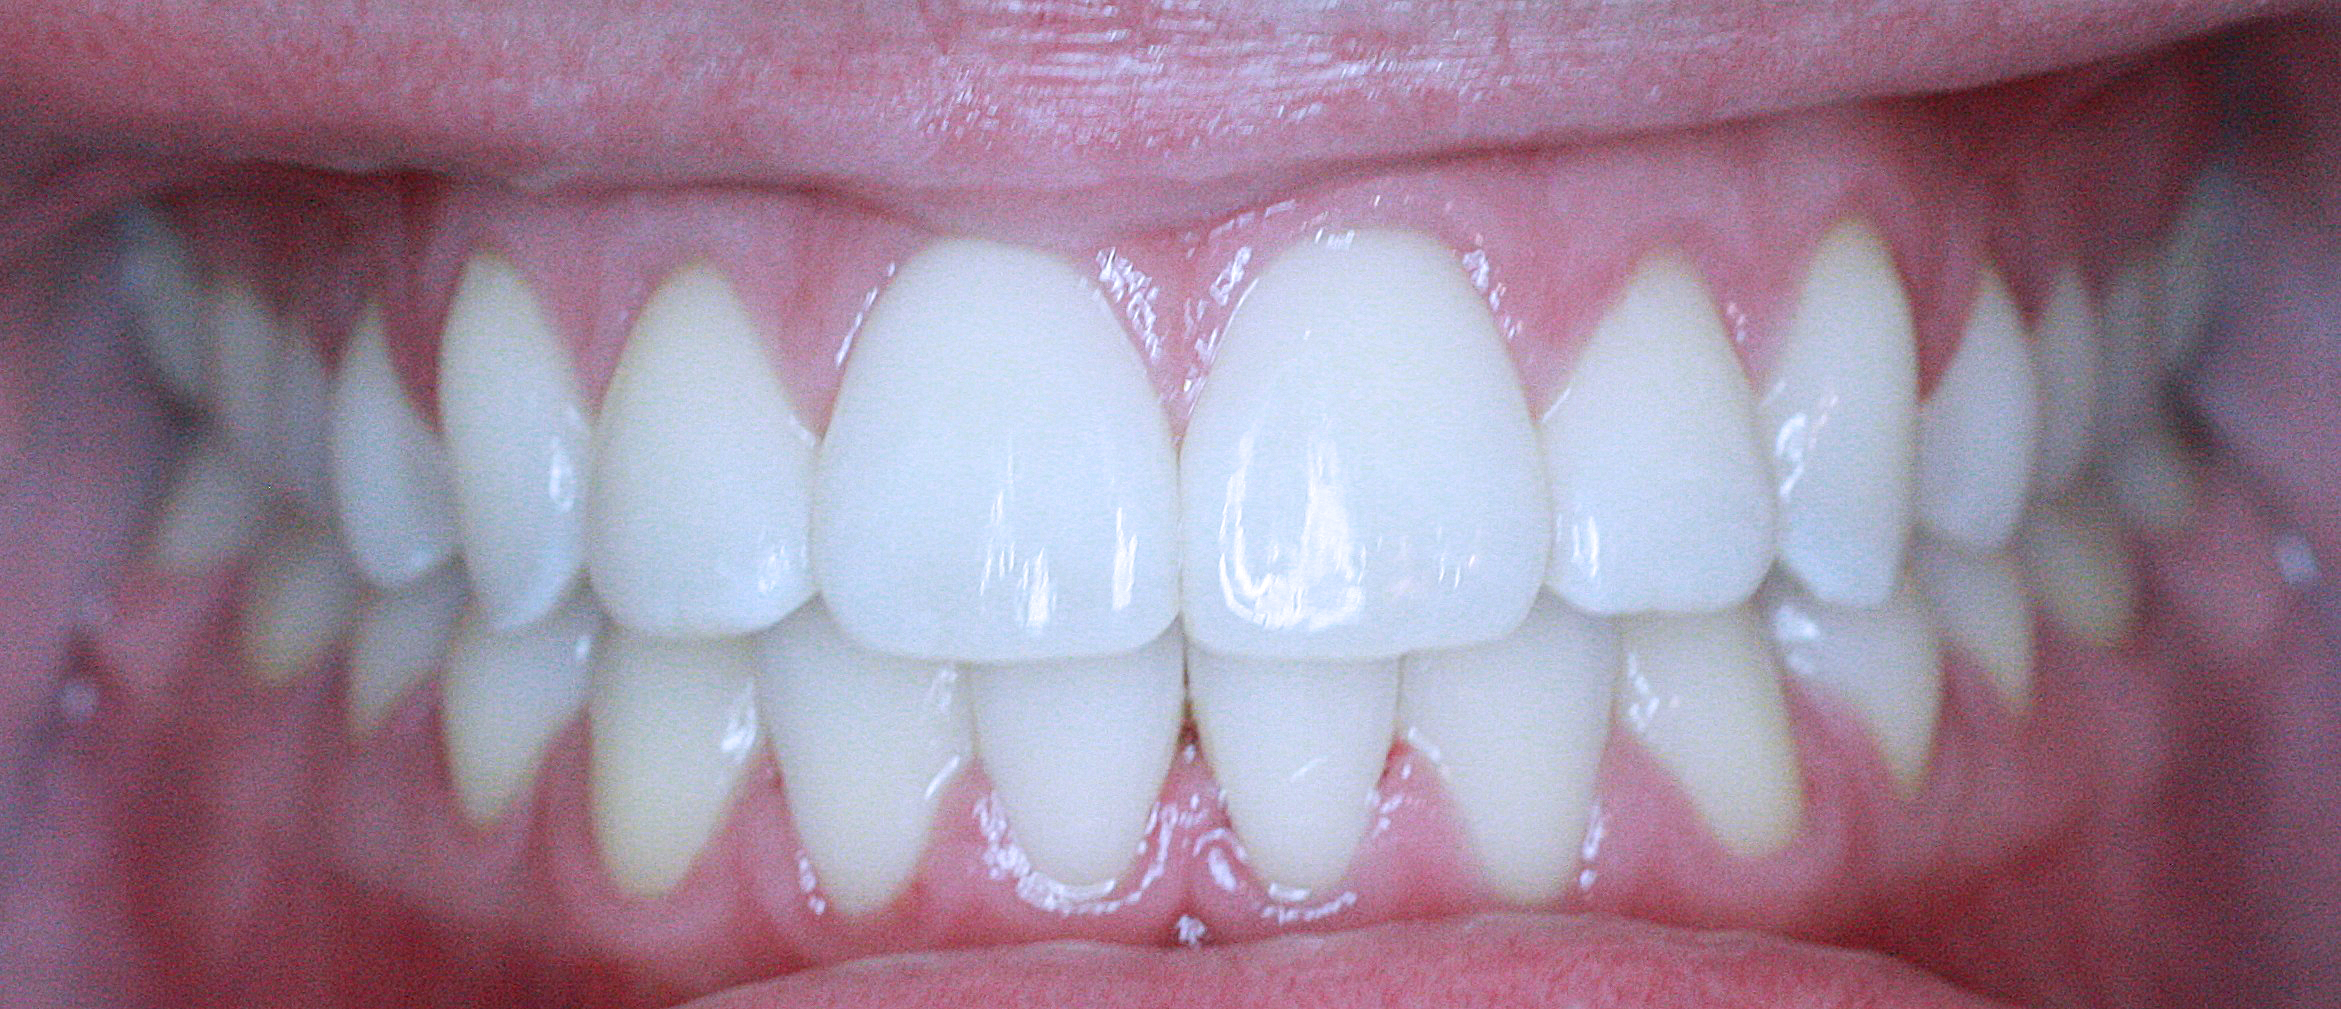 PowerProx 6-month Braces Case 2 after